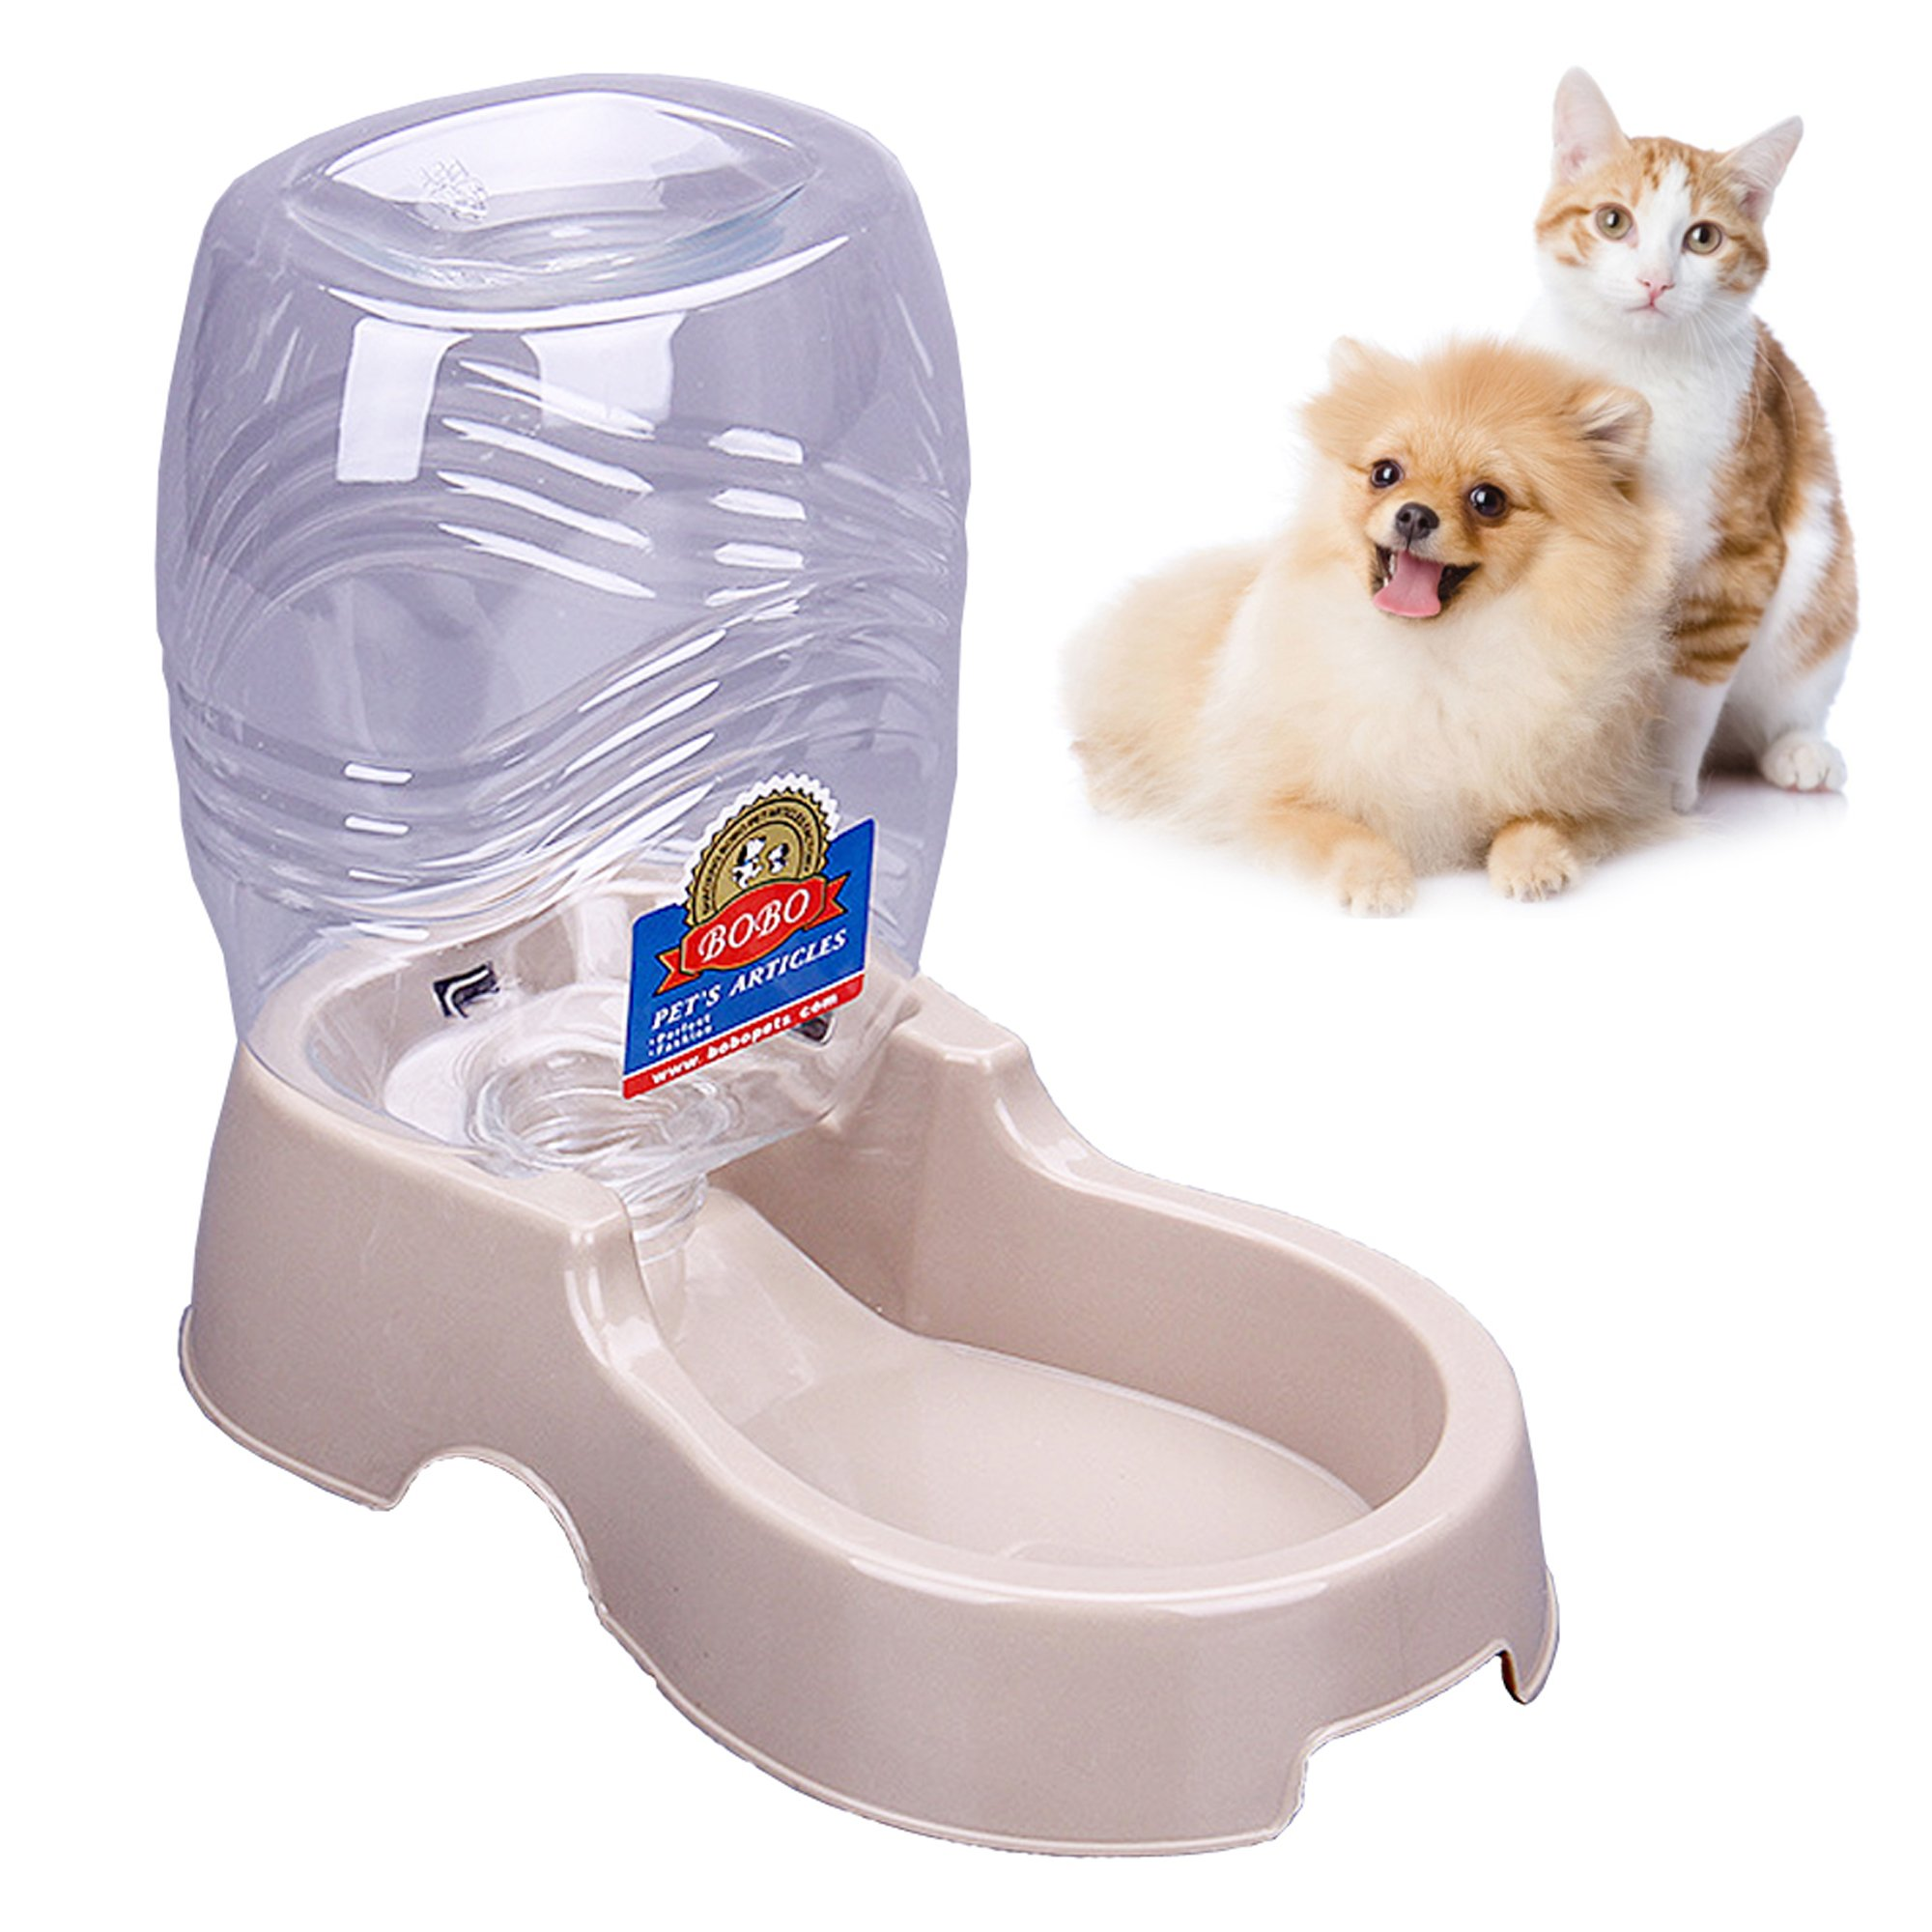 BOBO Pet Automatic Replenish Waterer Pet Cafe Cat Drink Bowl Bottle Dish for Cats/Dogs –1/4 gal(beige)